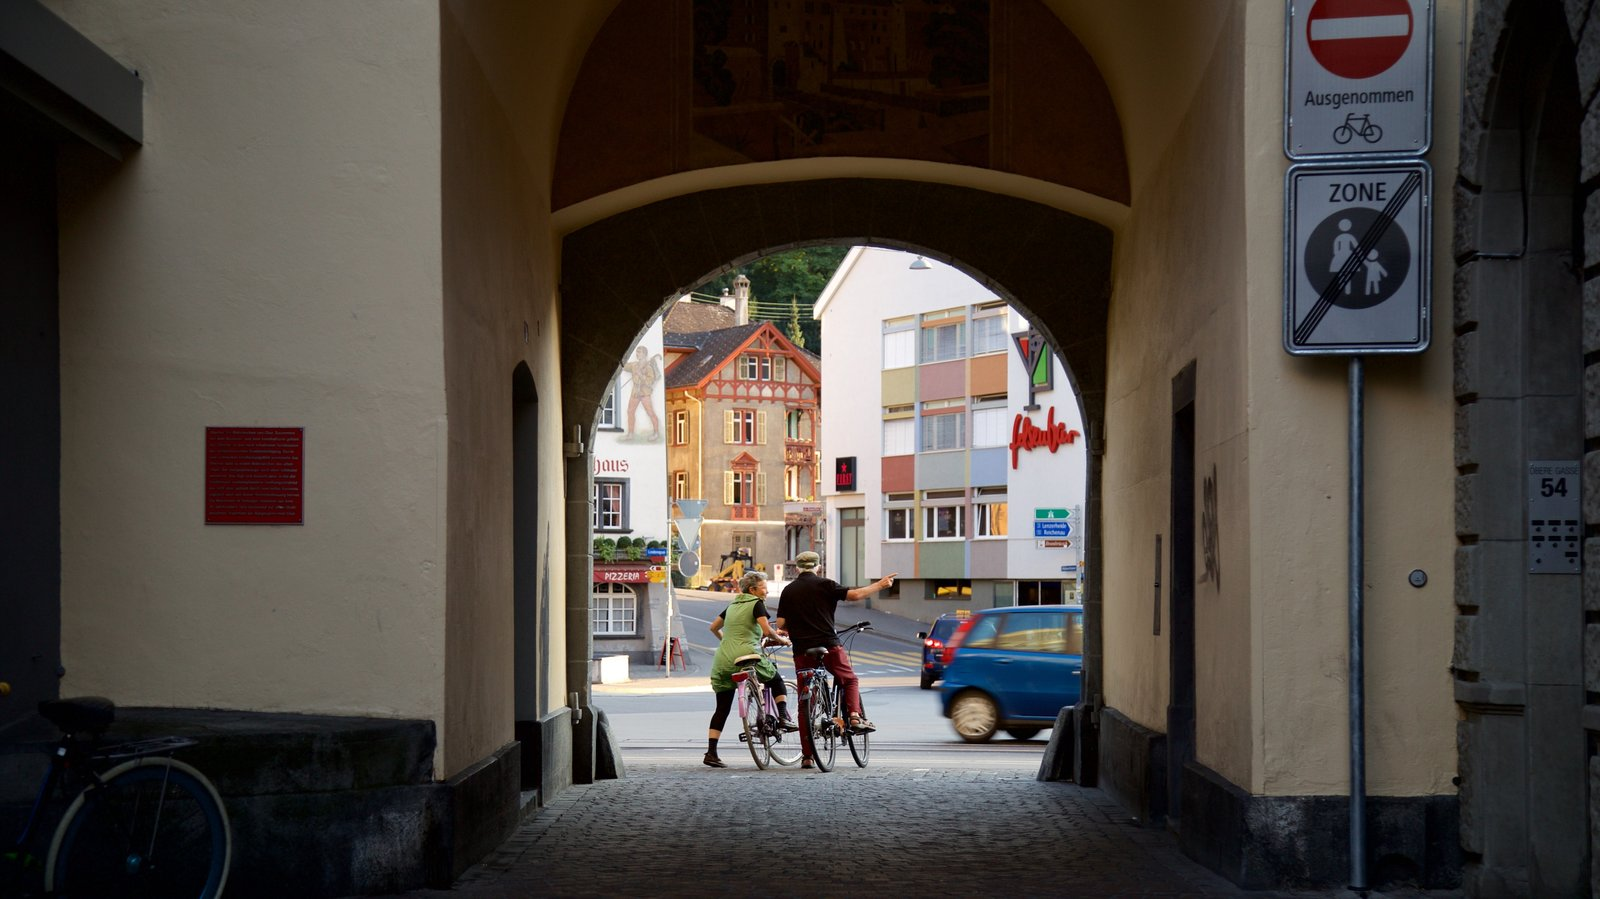 Obertor Building showing cycling as well as a couple